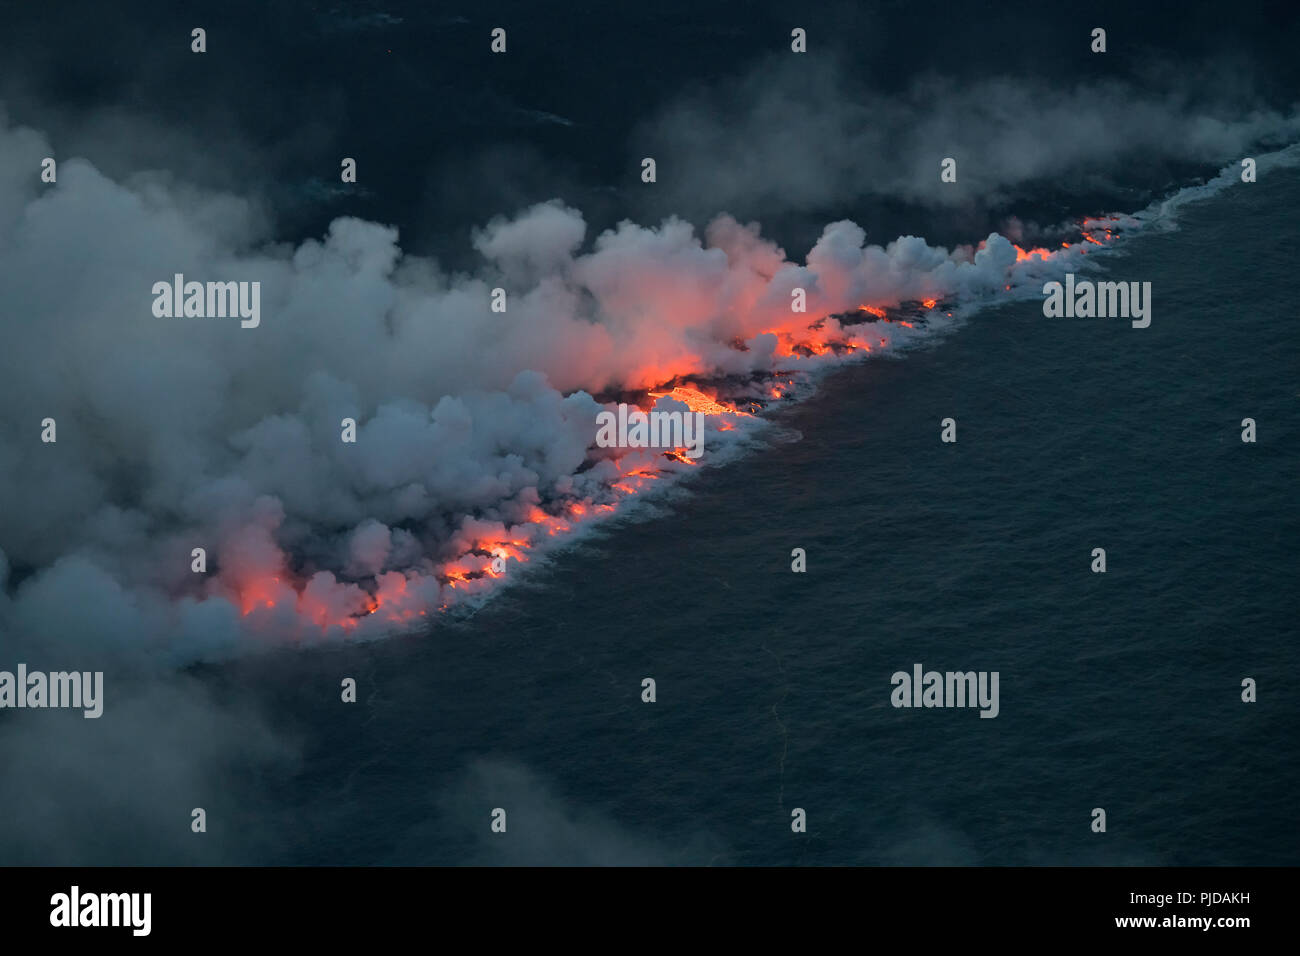 ocean entry Ahalanui, where the lava river erupted from fissure 8 of the Kilauea Volcano east rift zone near Pahoa, Hawaii meets the Pacific Ocean - Stock Image